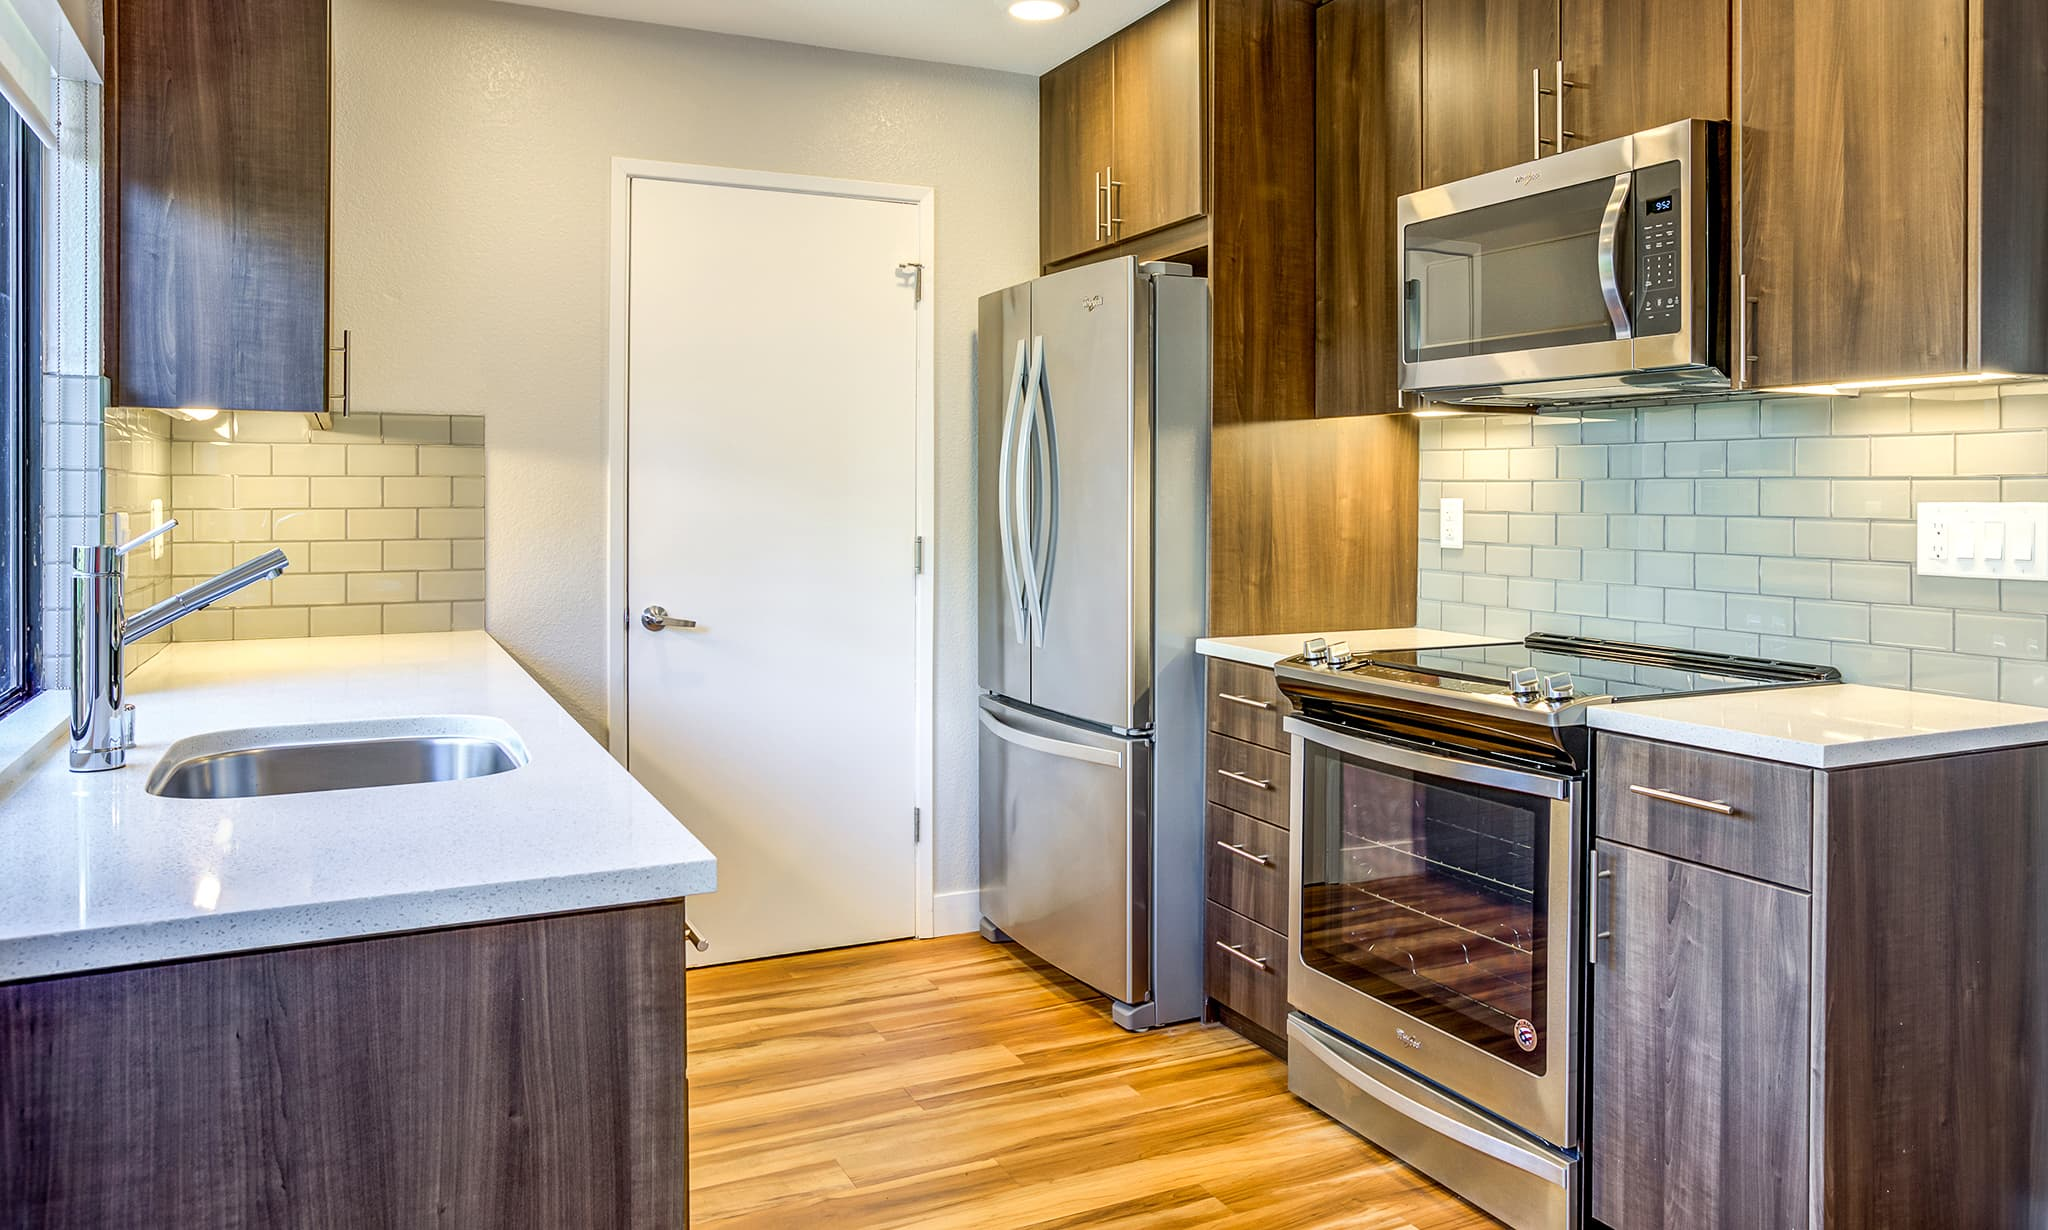 300 Granada Apartments apartments in Mountain View CA to rent photo 2